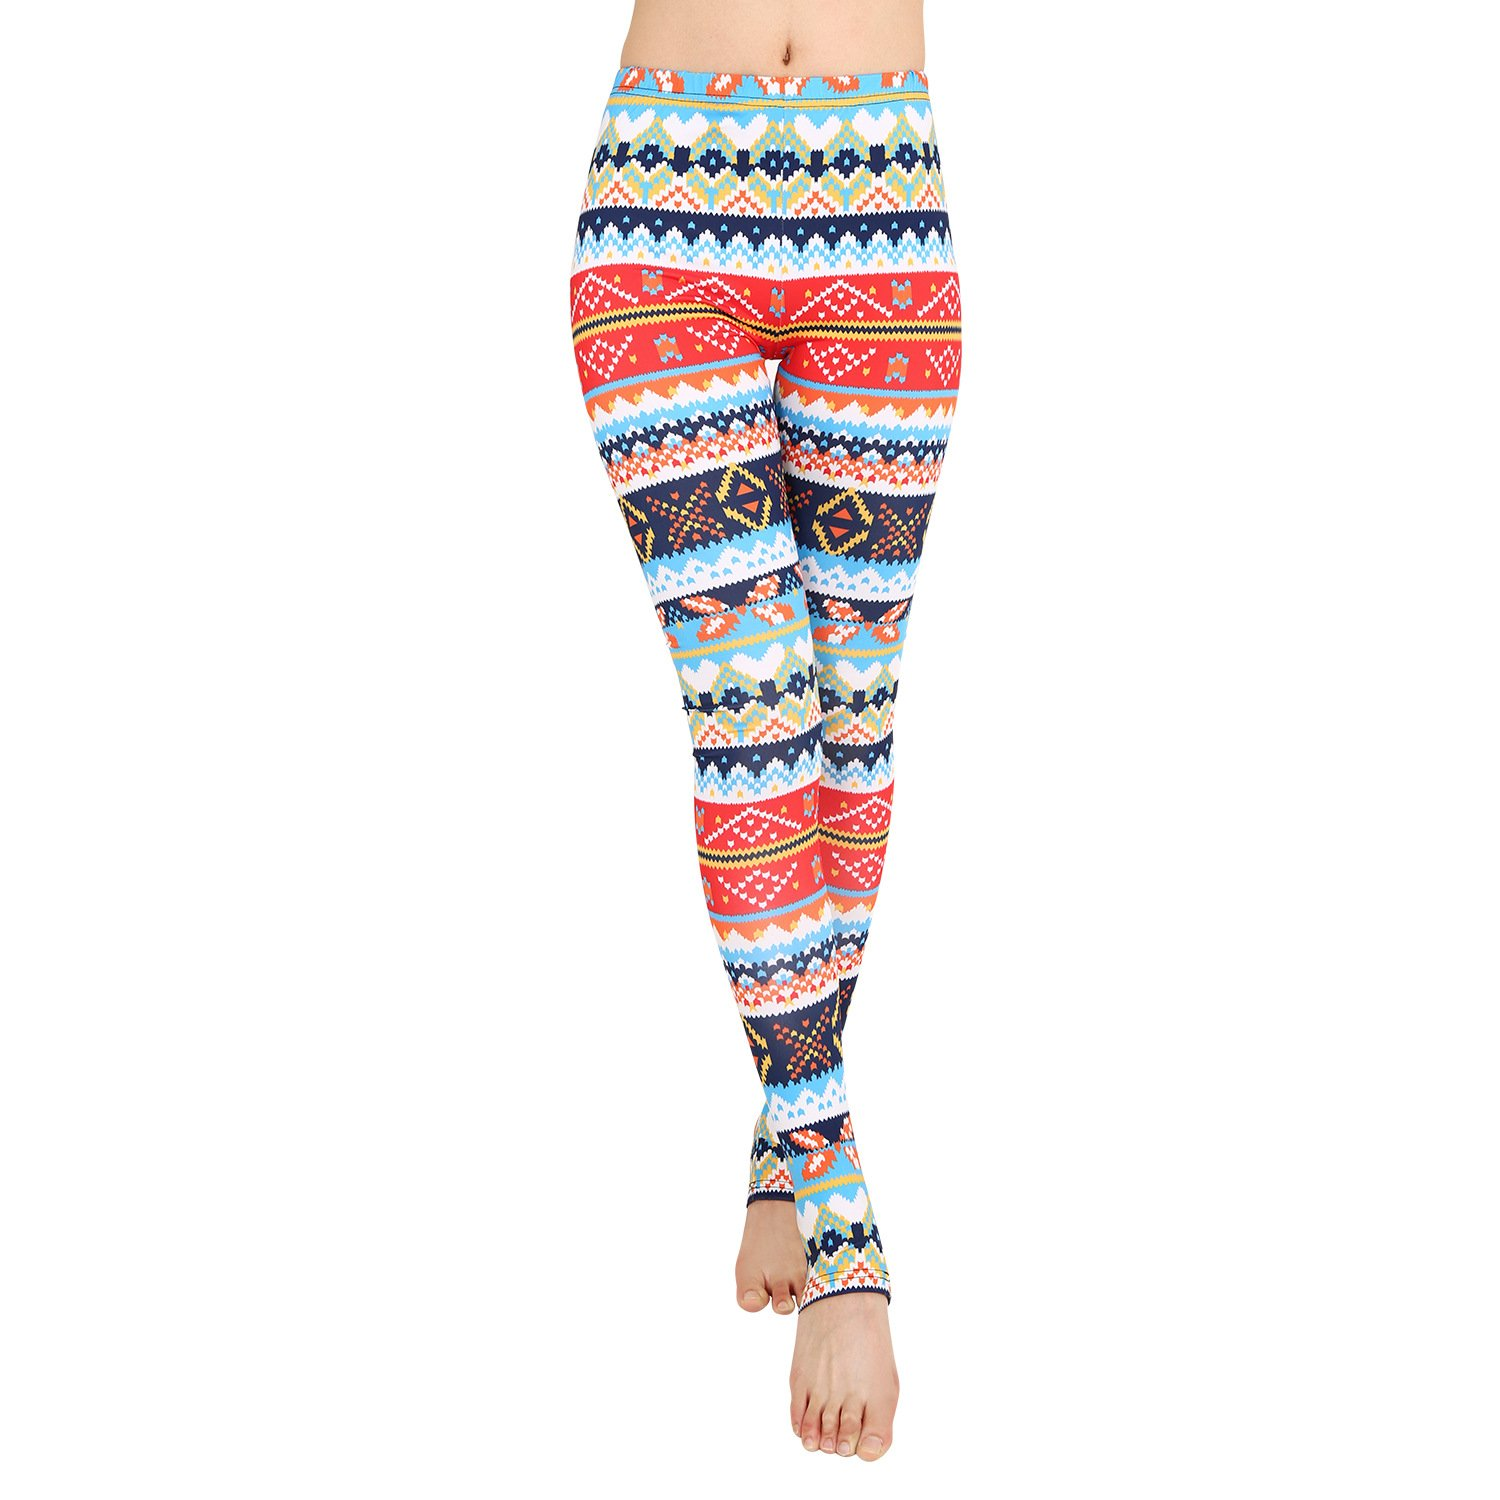 bf76d49609dcfe Kinikiss High Waisted Stirrup Yoga Legging Pants for Women Christmas  Outfits with Tribal Aztec Pattern: Amazon.co.uk: Clothing